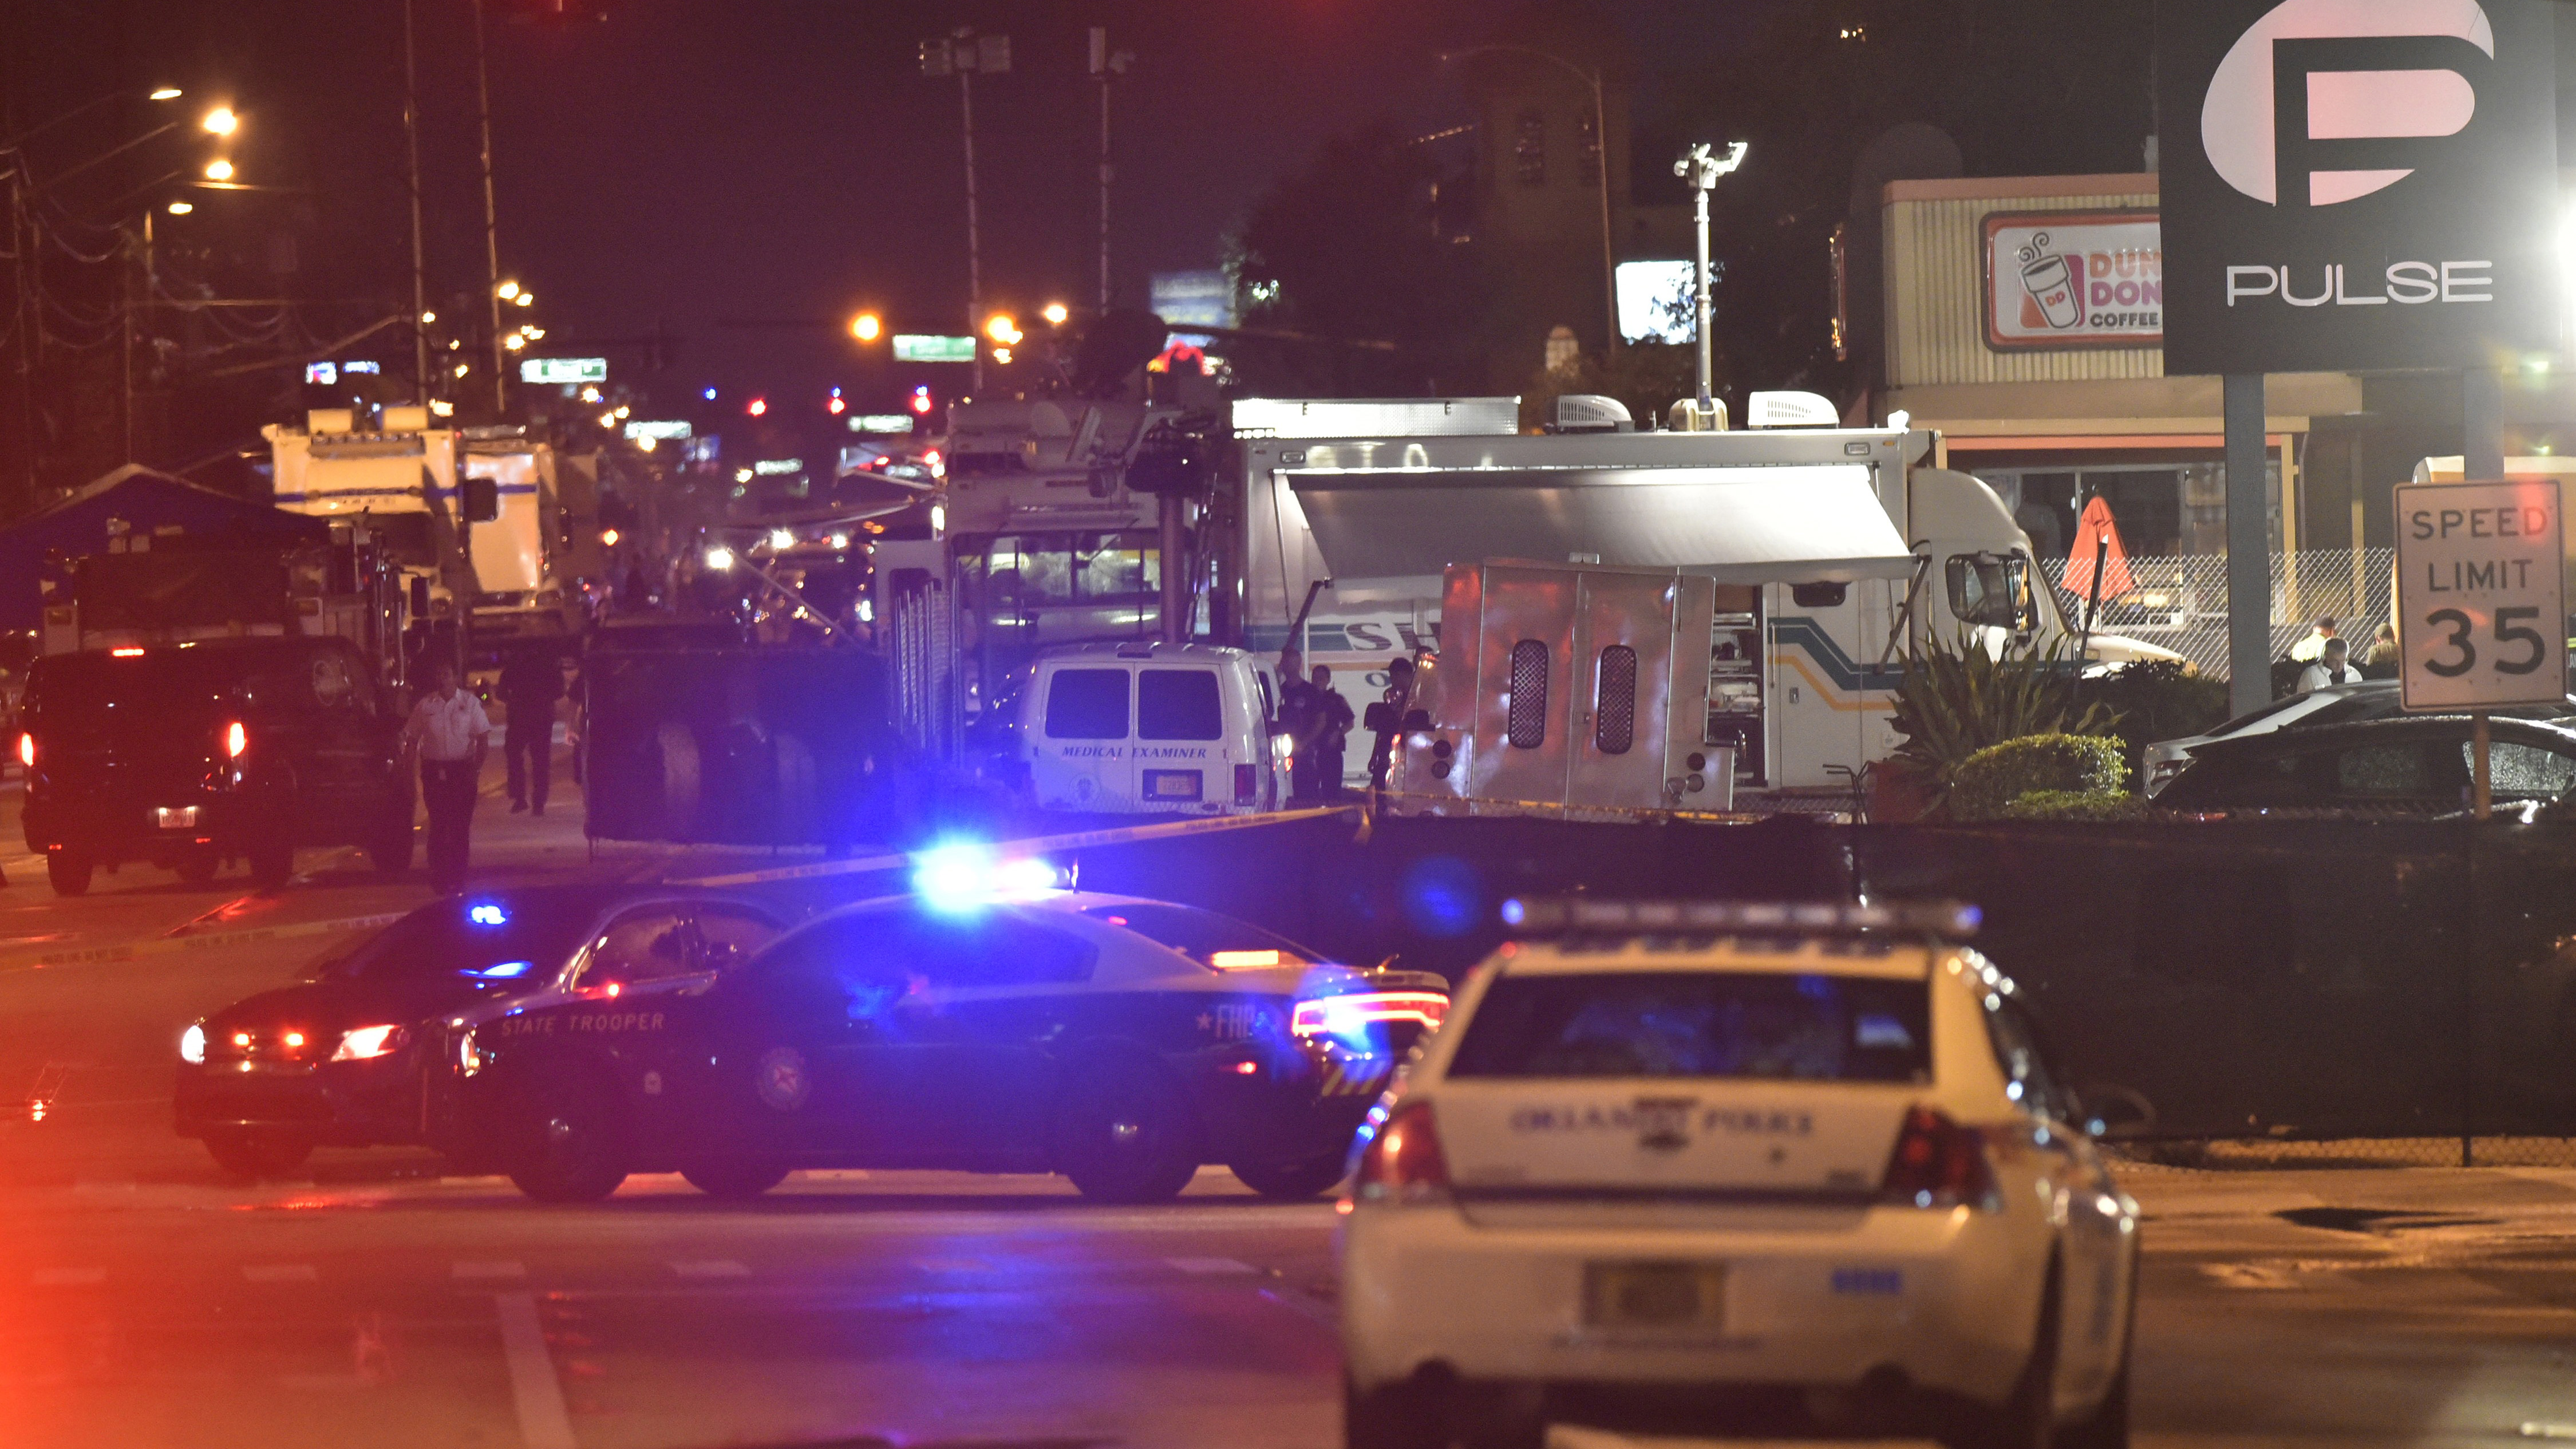 Lights from police vehicles light up the scene in front of the Pulse club in Orlando, Florida after a fatal shooting on June 12, 2016. GETTY IMAGES/AFP/Mandel Ngan